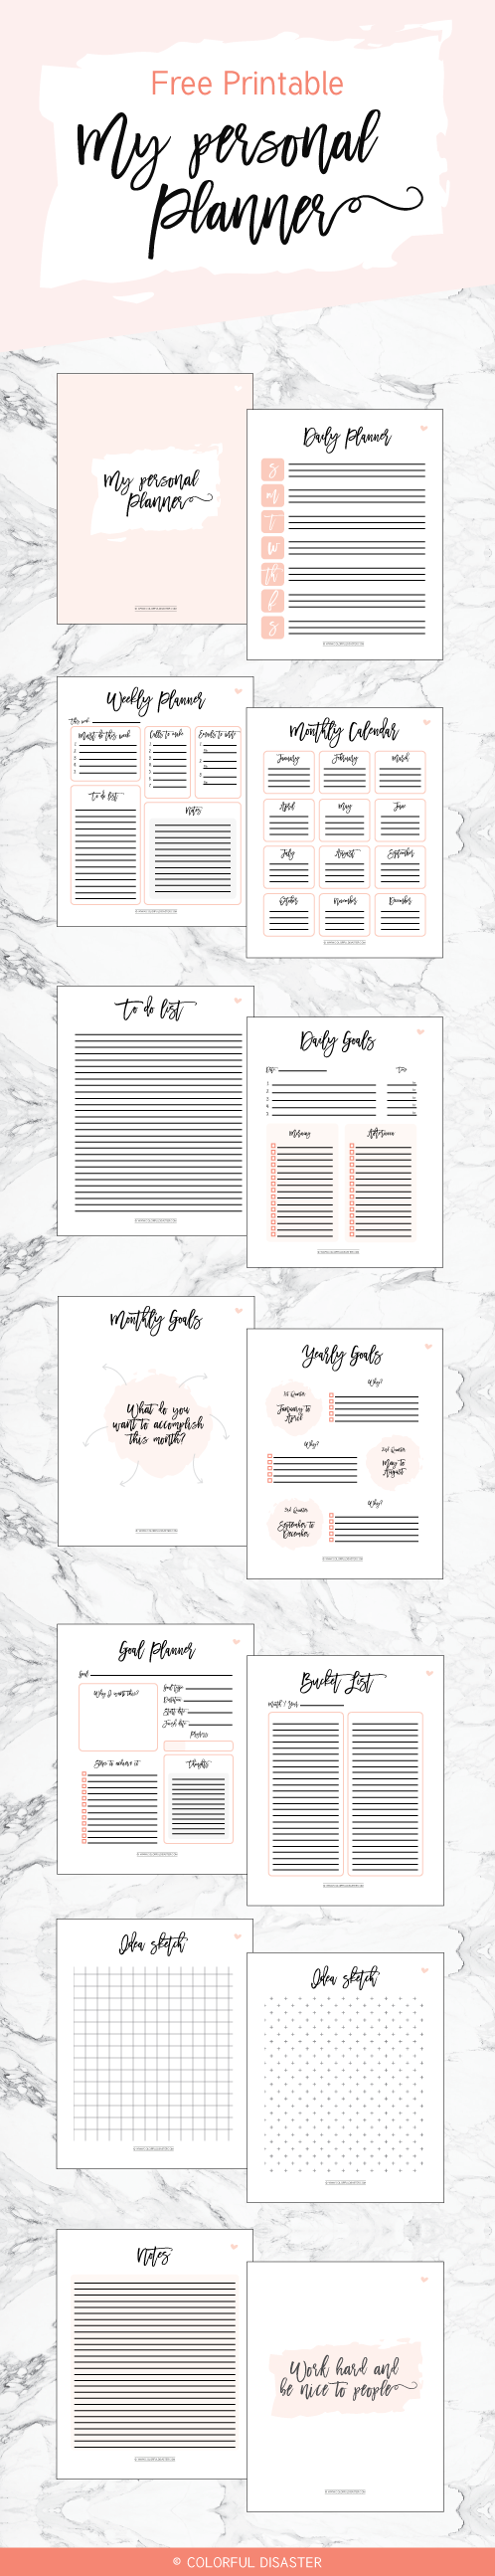 colorful disaster printable personal planner